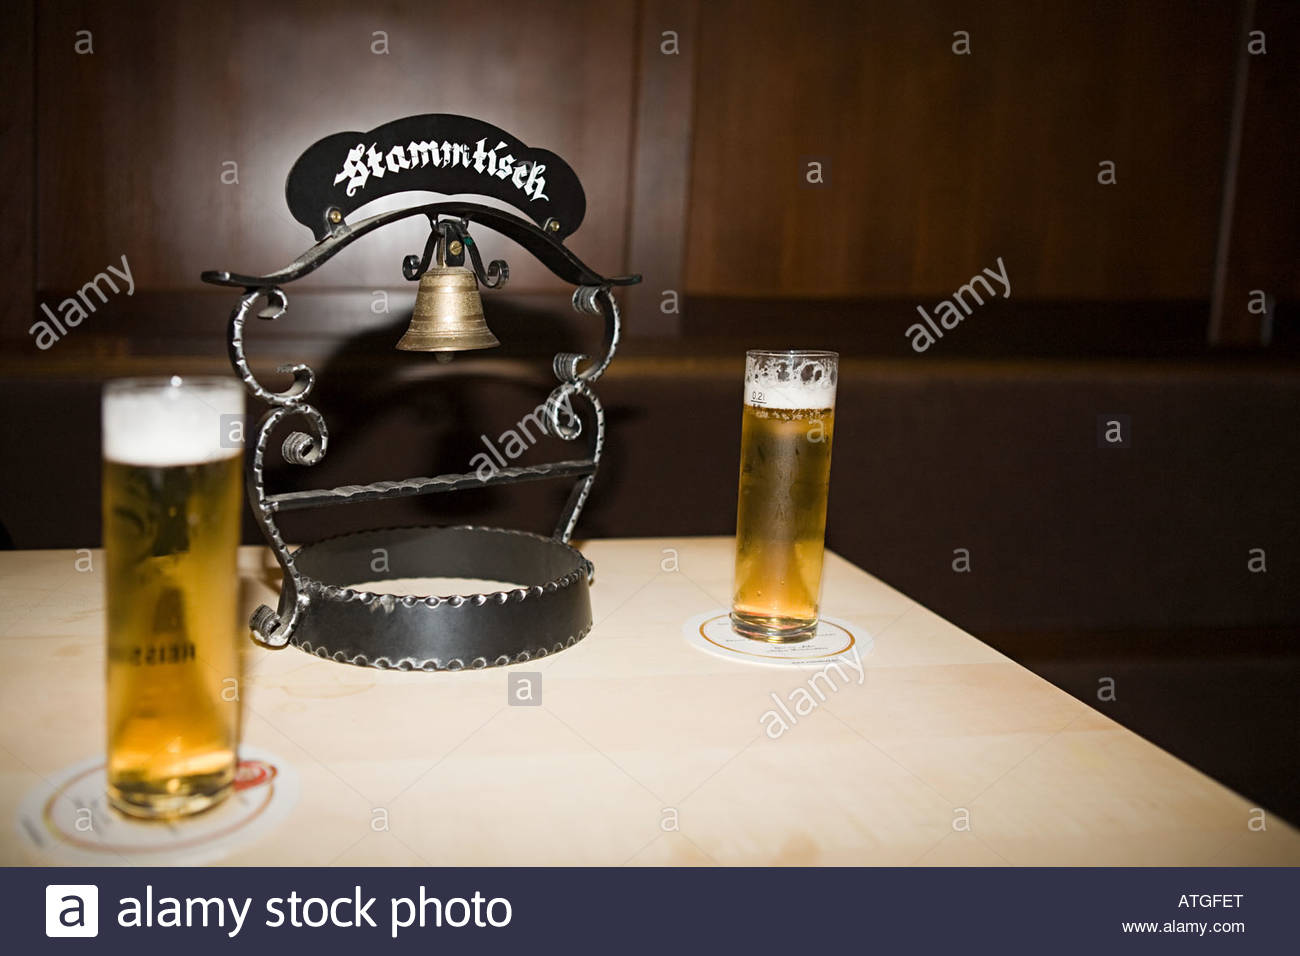 germany drinking pub stockfotos germany drinking pub bilder alamy. Black Bedroom Furniture Sets. Home Design Ideas